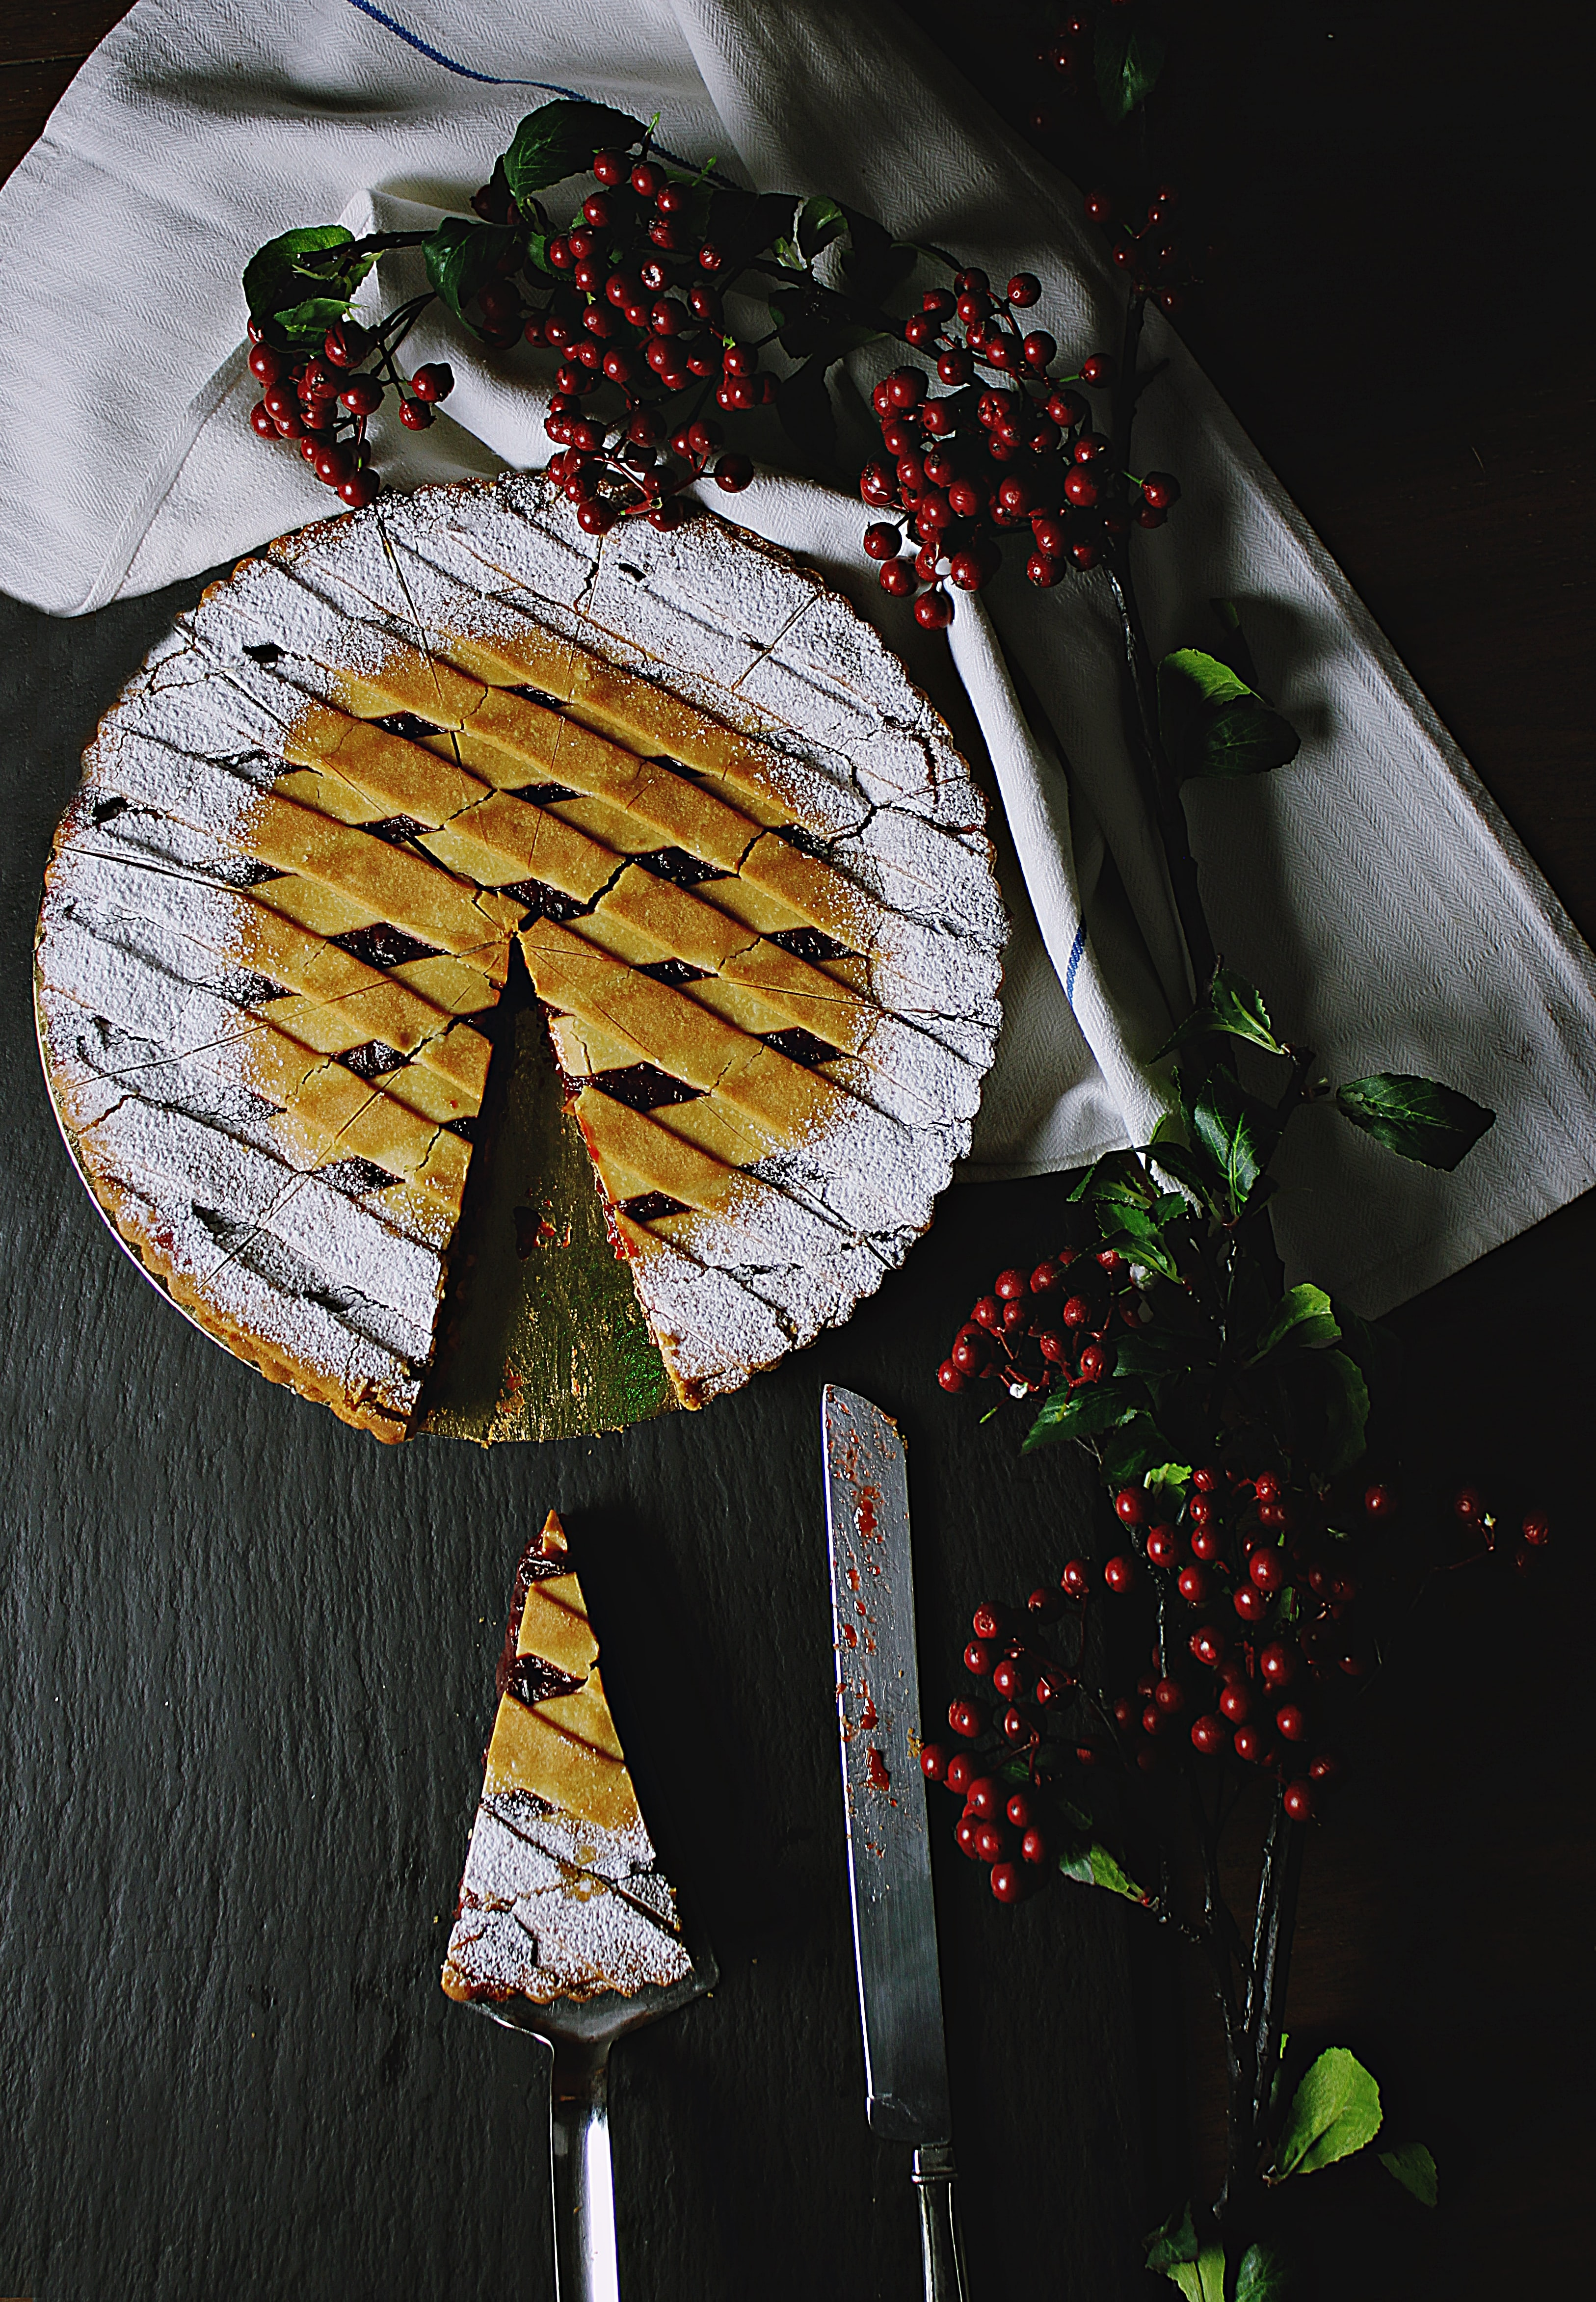 baked sliced cherry pie